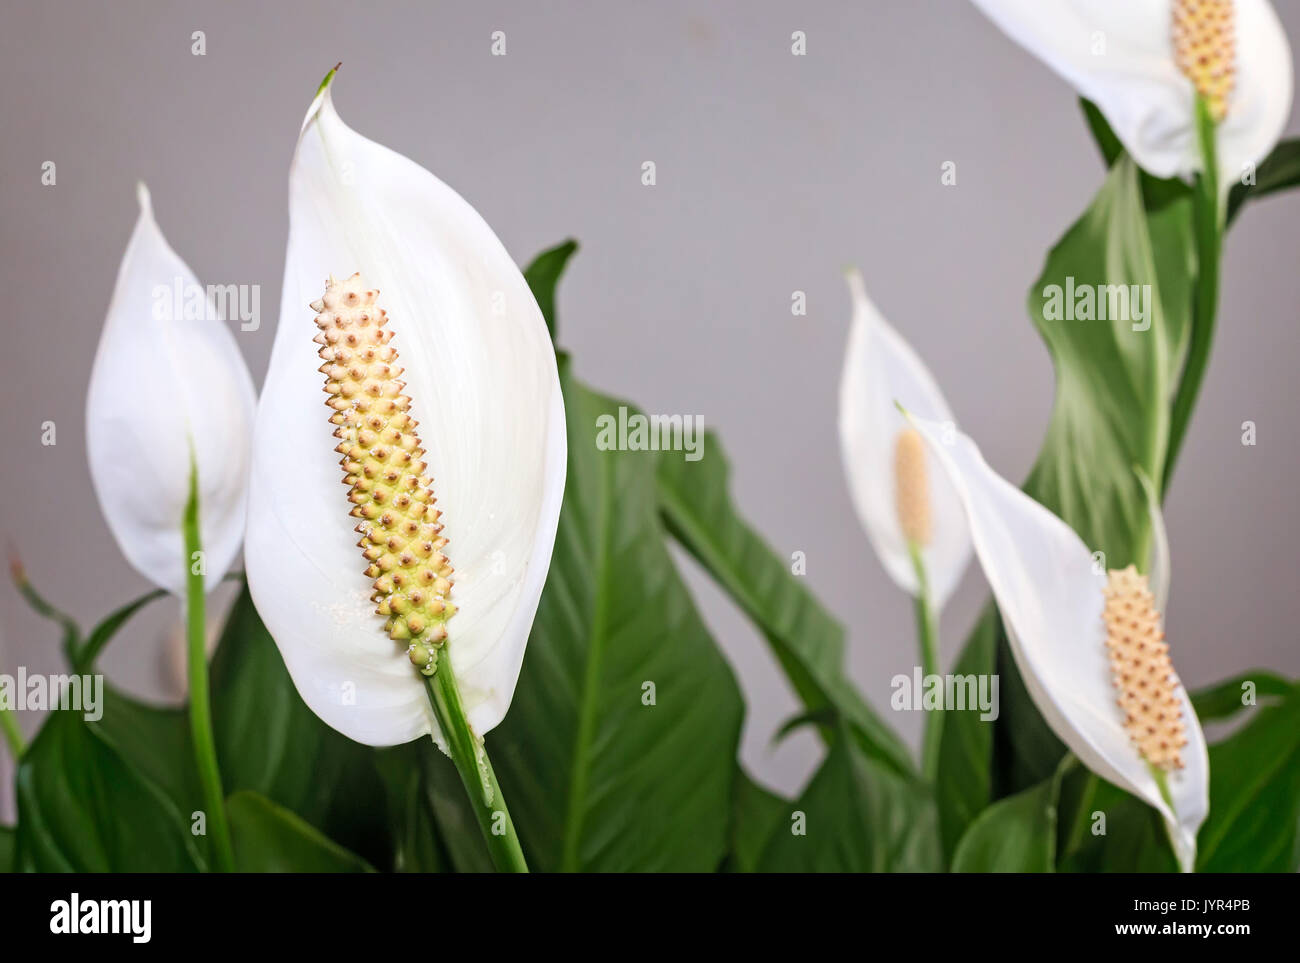 Beautiful white flowers and green leaves tropical flower Spathiphyllum on a light background. Stock Photo